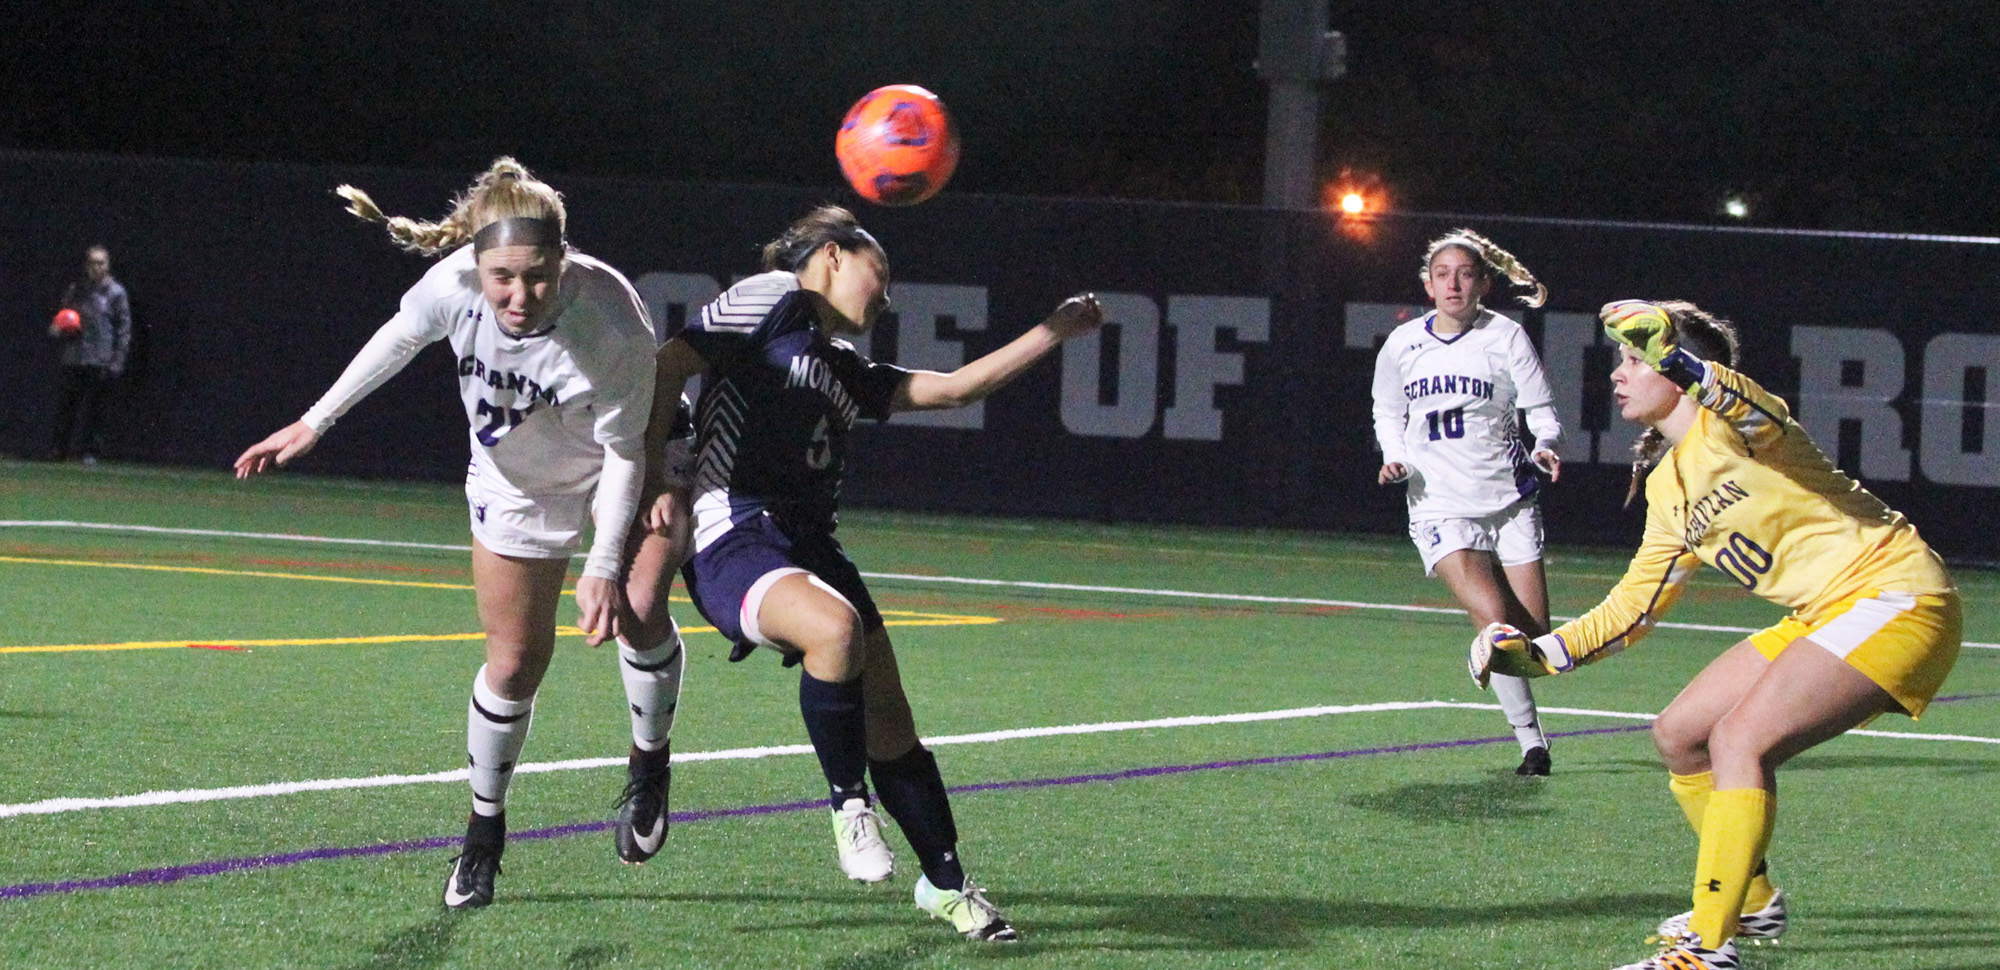 Sophomore forward Corinne McDonald scored on this header in Tuesday's Landmark Conference semifinal against Moravian.